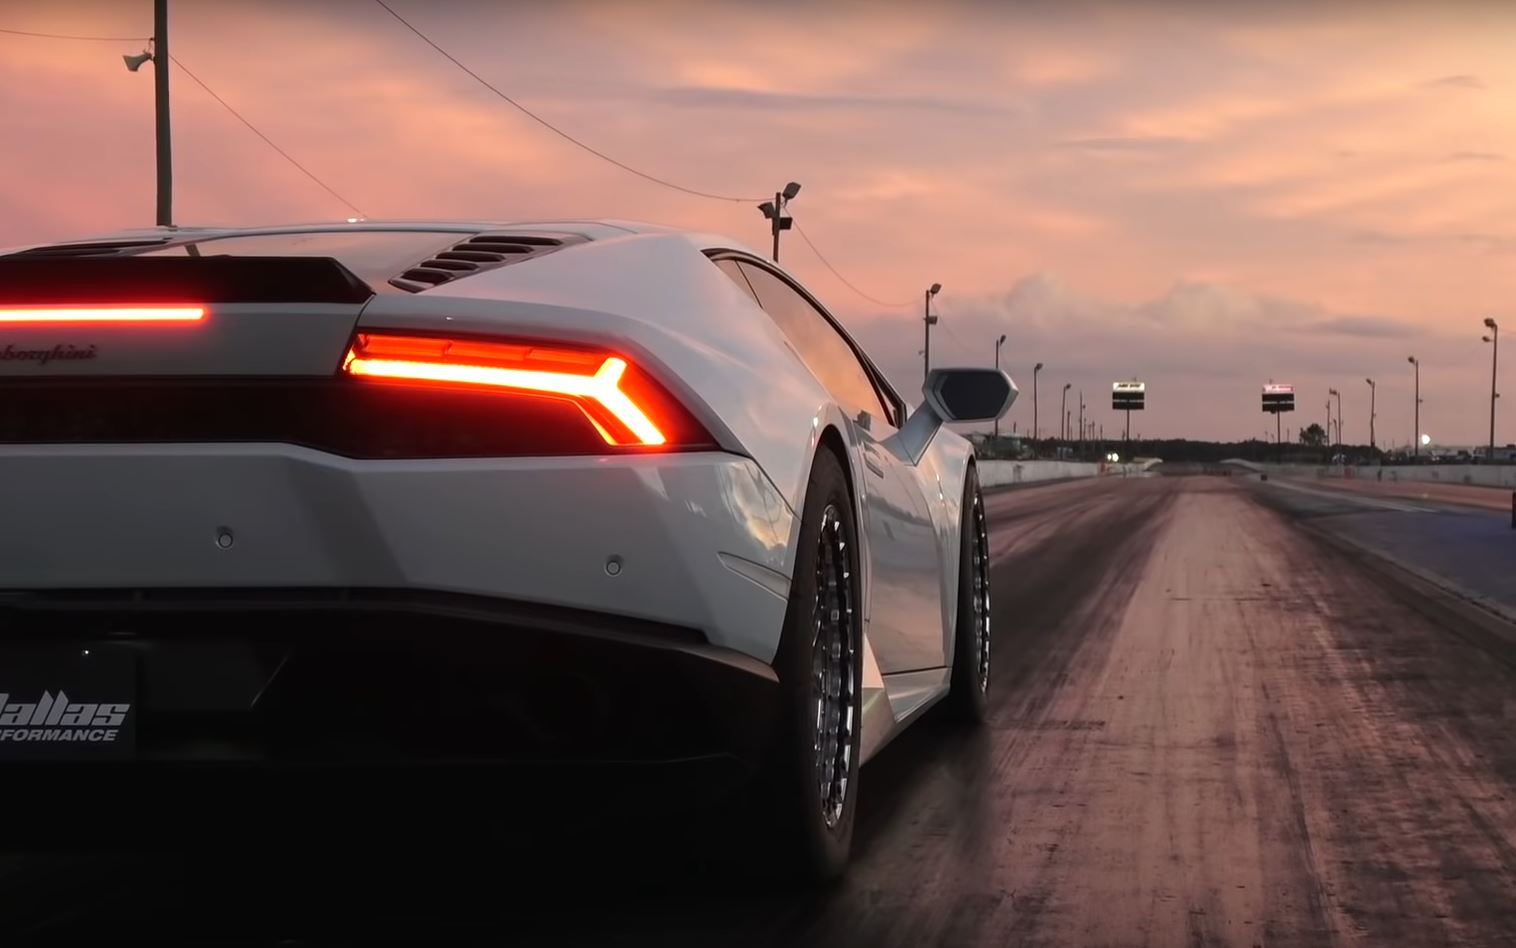 Junk Cars Detroit >> 2,000 HP Huracan and 1,500 HP Huracan Performante Play on Street and Drag Strip - autoevolution